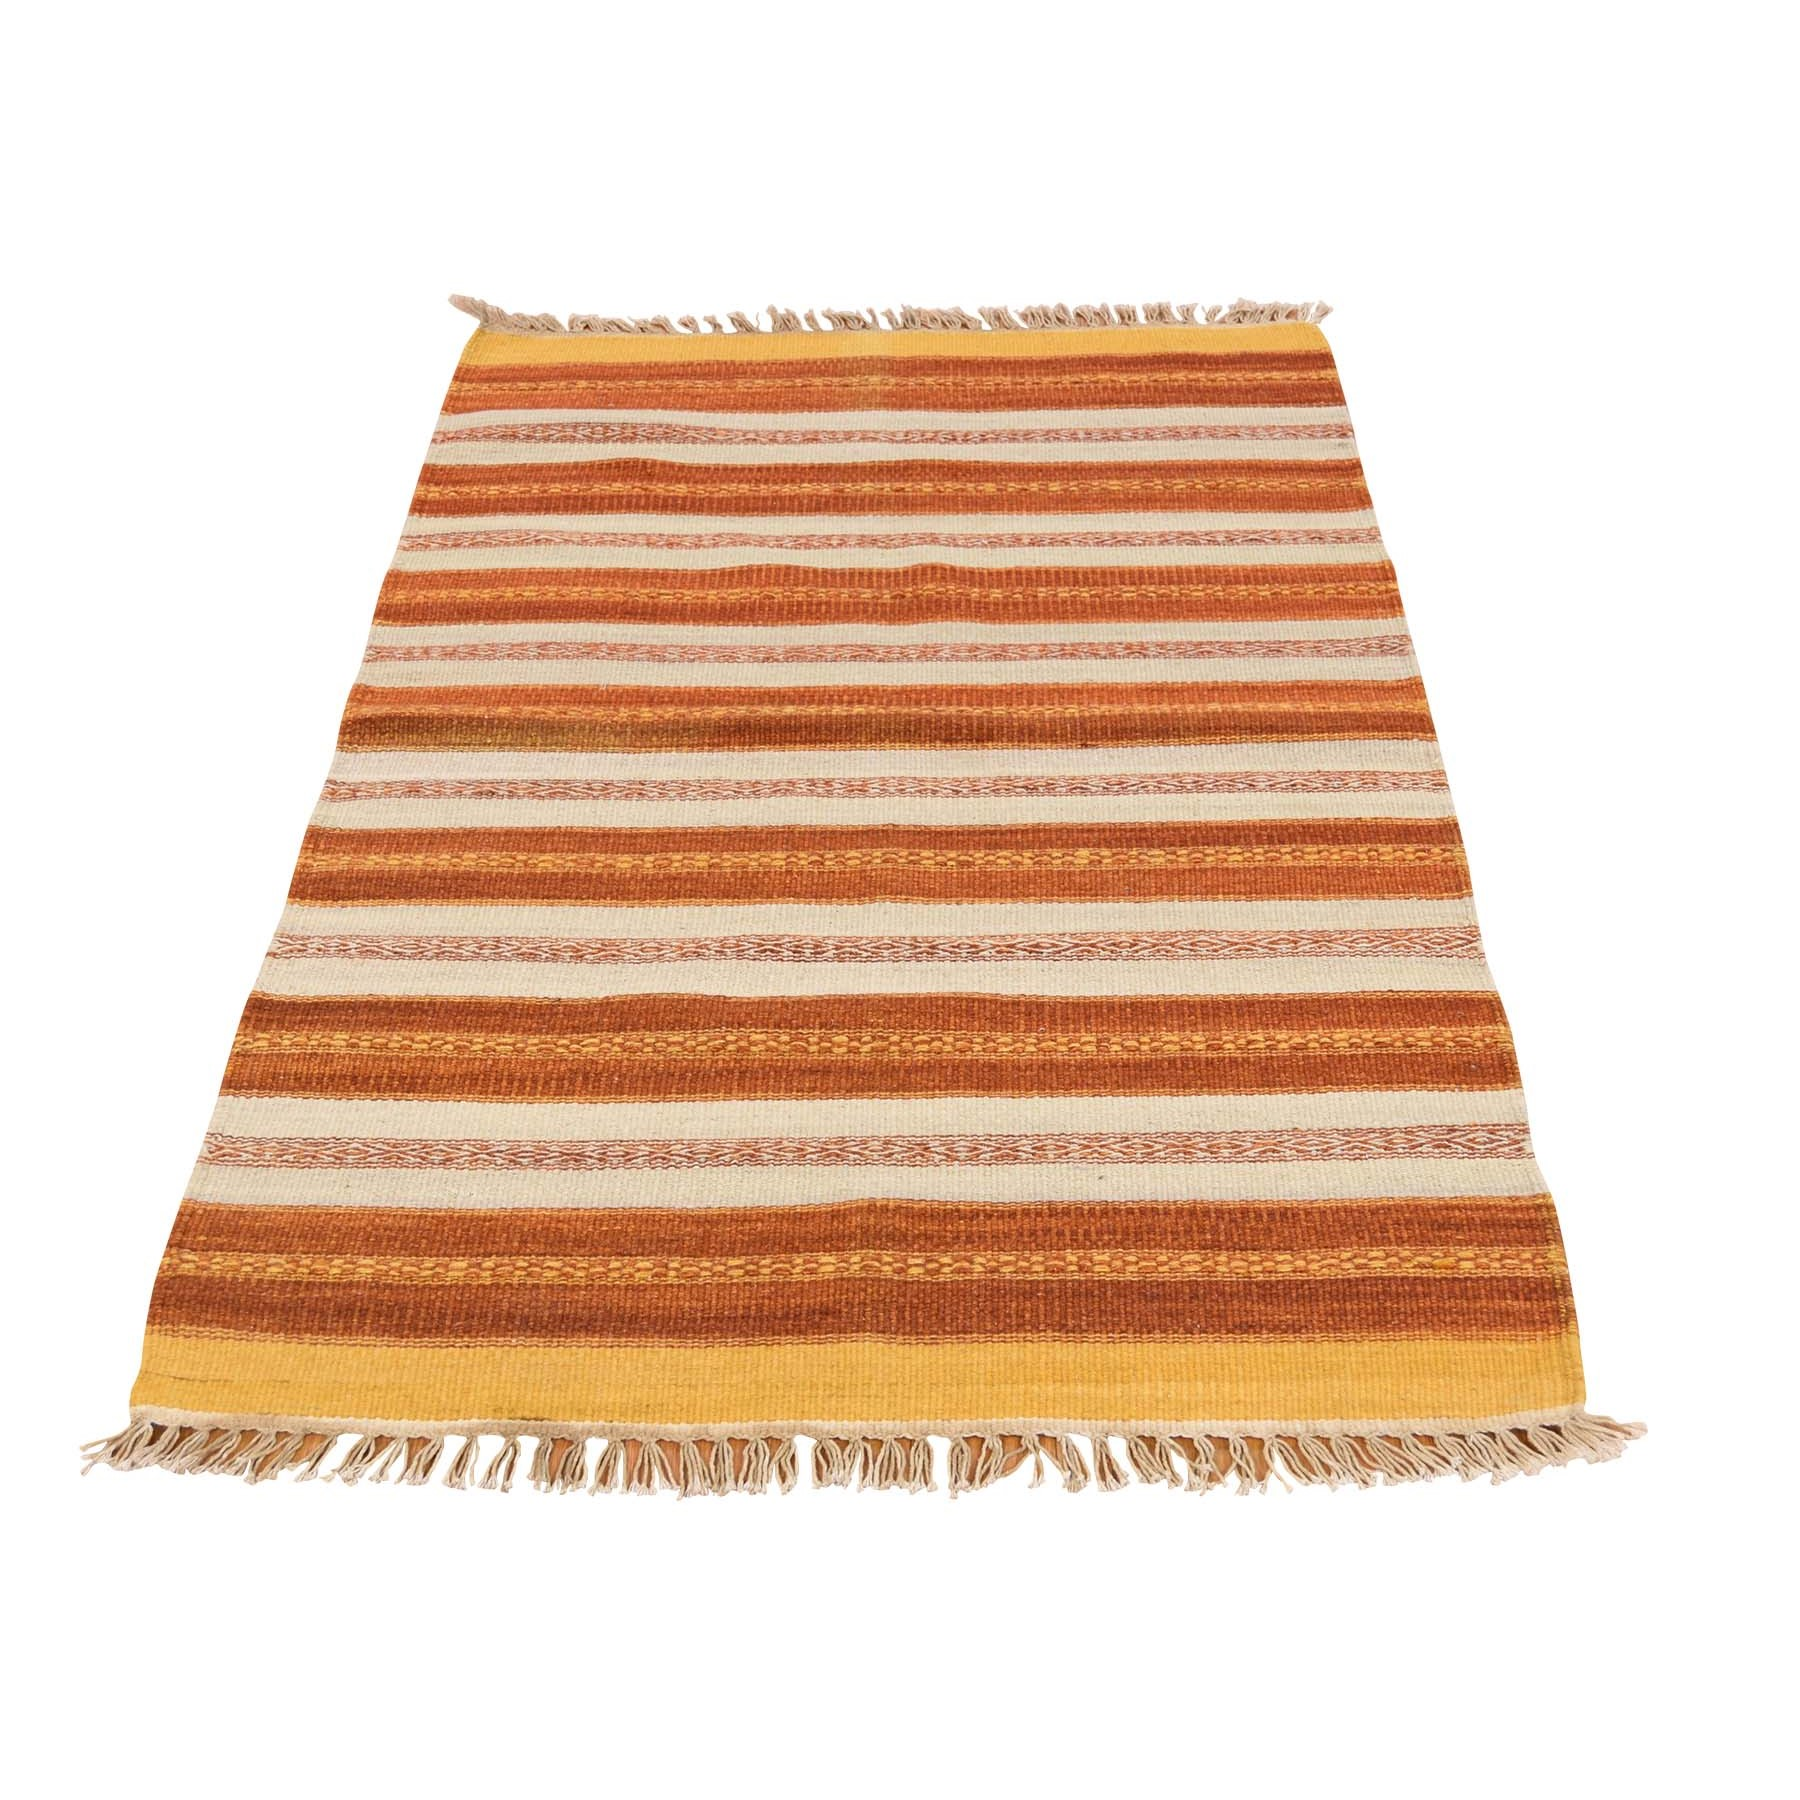 2'10''X4'9'' Flat Weave Hand Woven Striped Durie Kilim Oriental Rug moac79cd